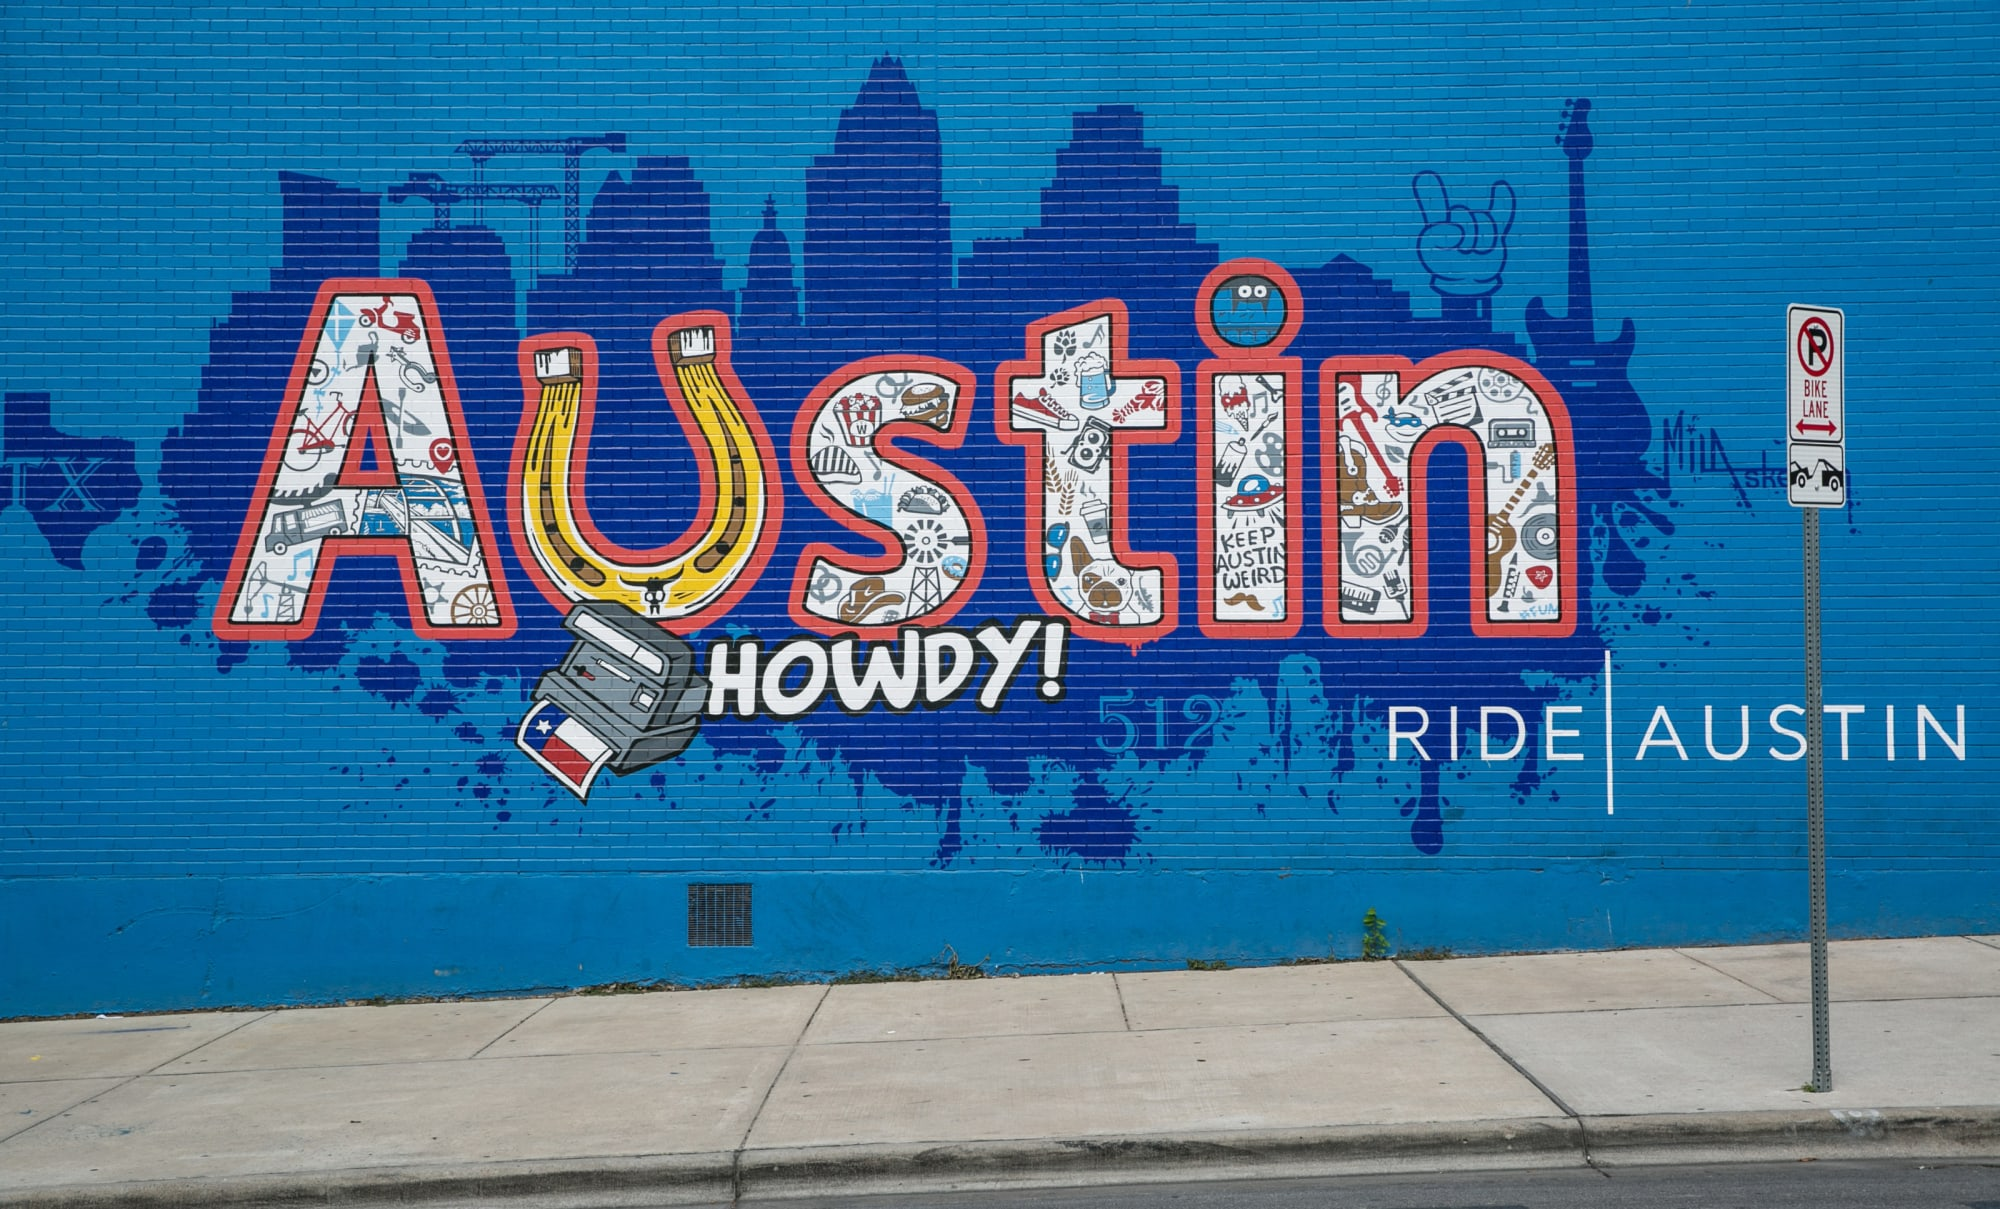 5 restaurants in Downtown Austin that you have to check out